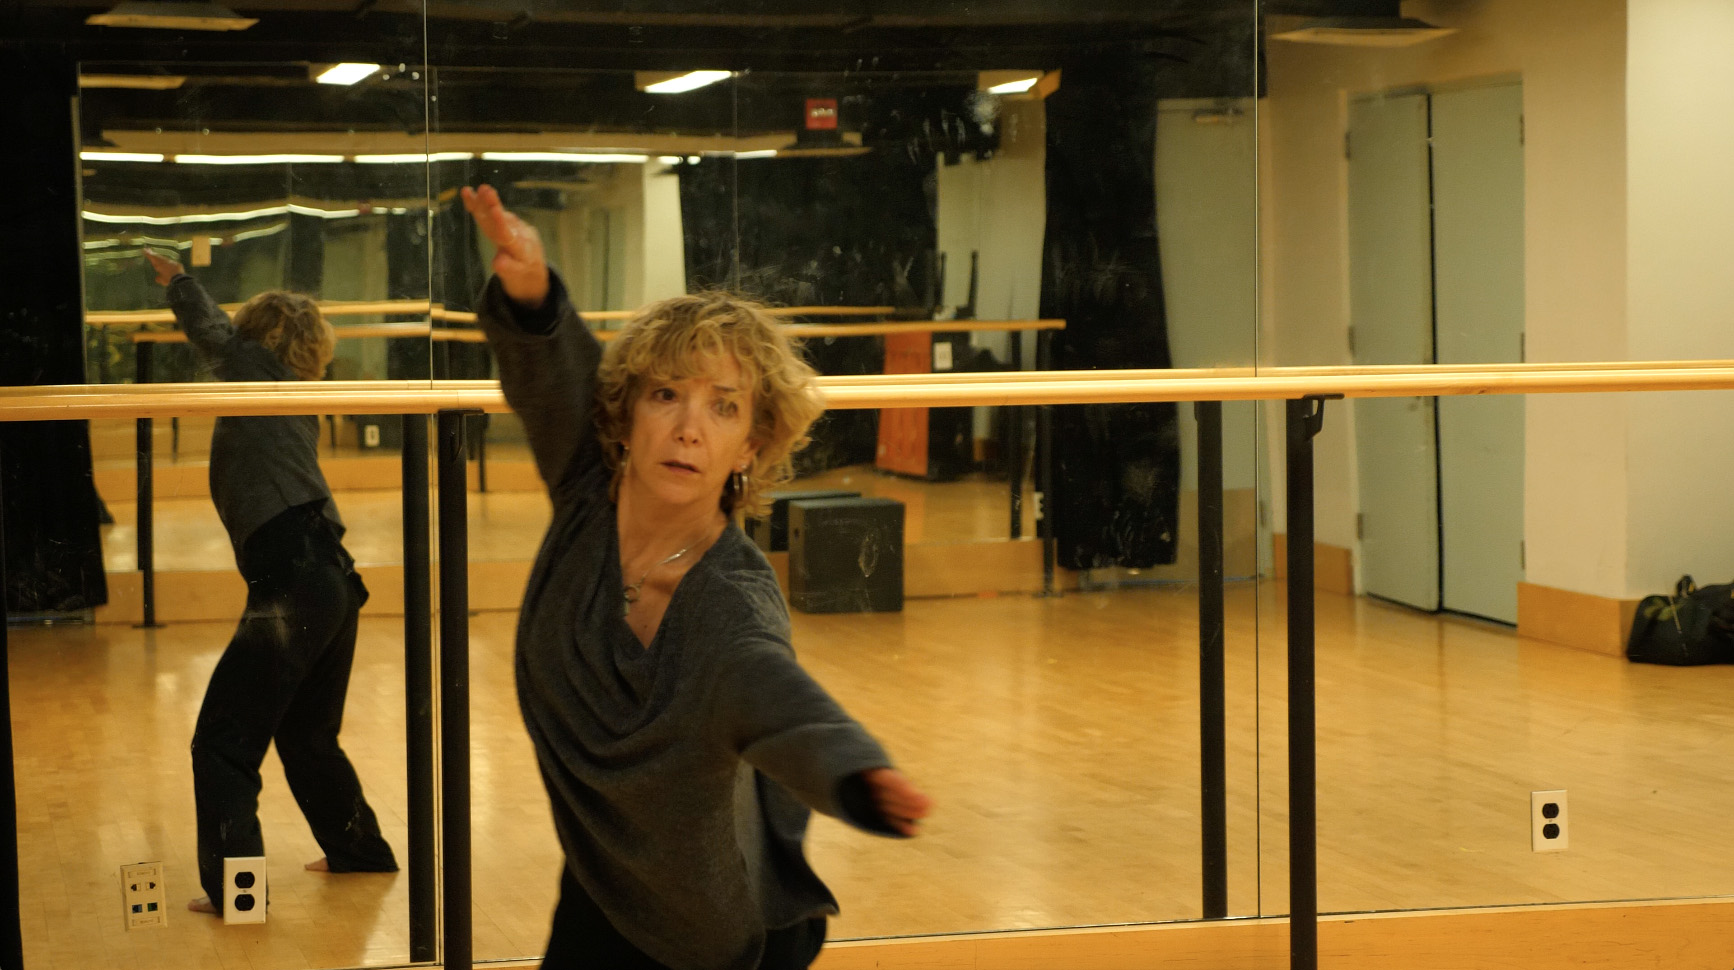 Dance-able - For choreographer Heidi Latsky, disability is no disadvantage.Season 3, Episode 11